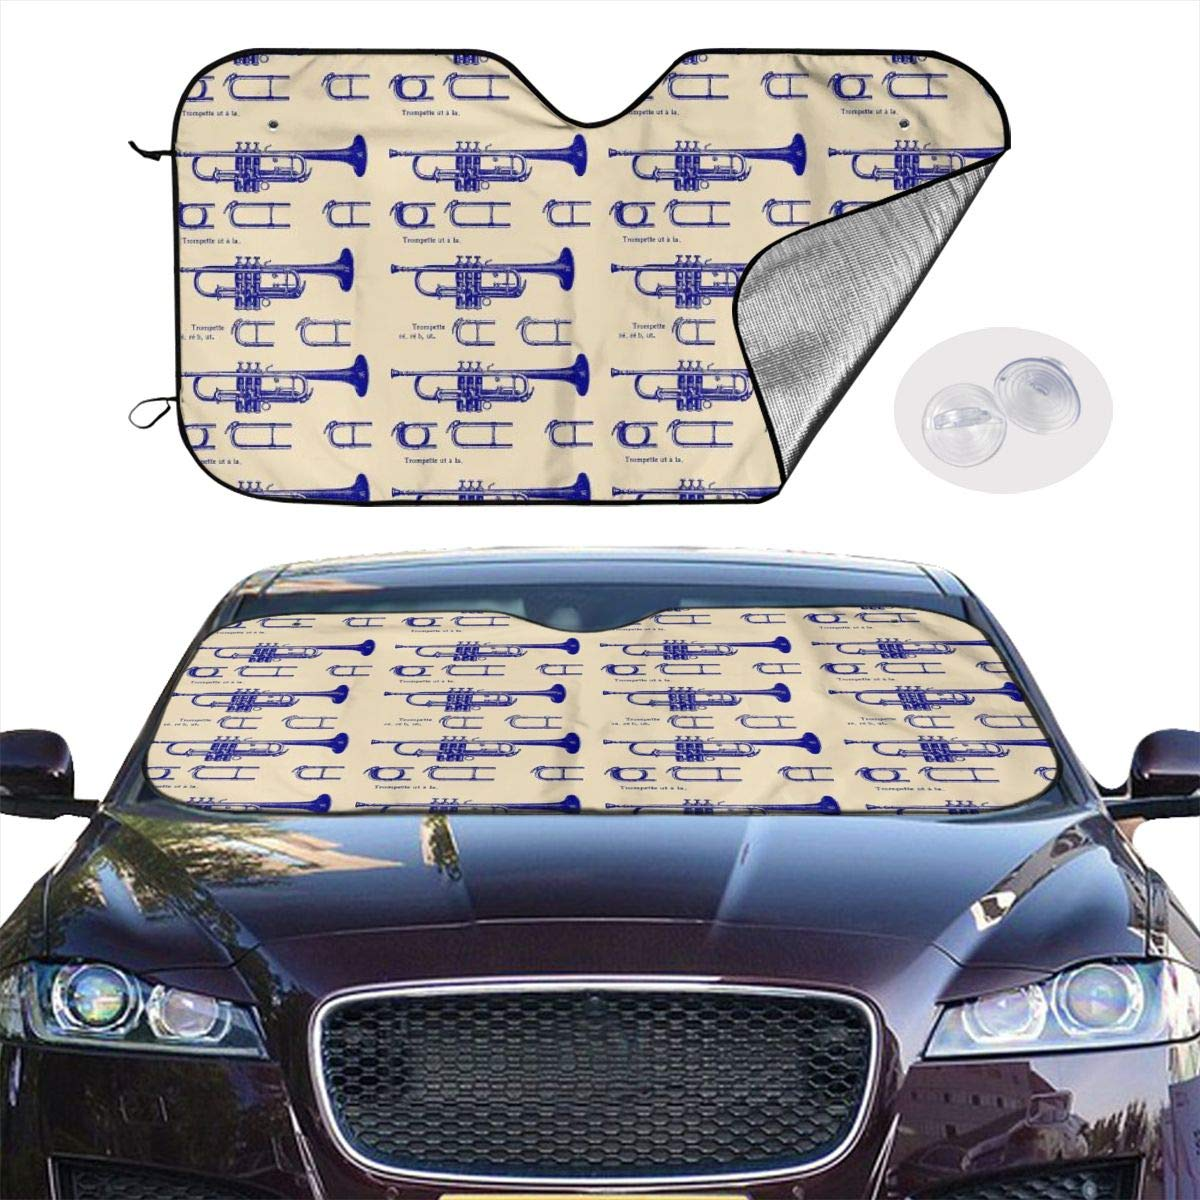 HE - Fashion Front Car Sunshade Windshield-Standard Sun Shade Keeps Vehicle Cool-UV Ray Protector Sunshade-Easy to Use Sun Shade - Instrument Trumpet (55 x 30 Inches) by HE - Fashion